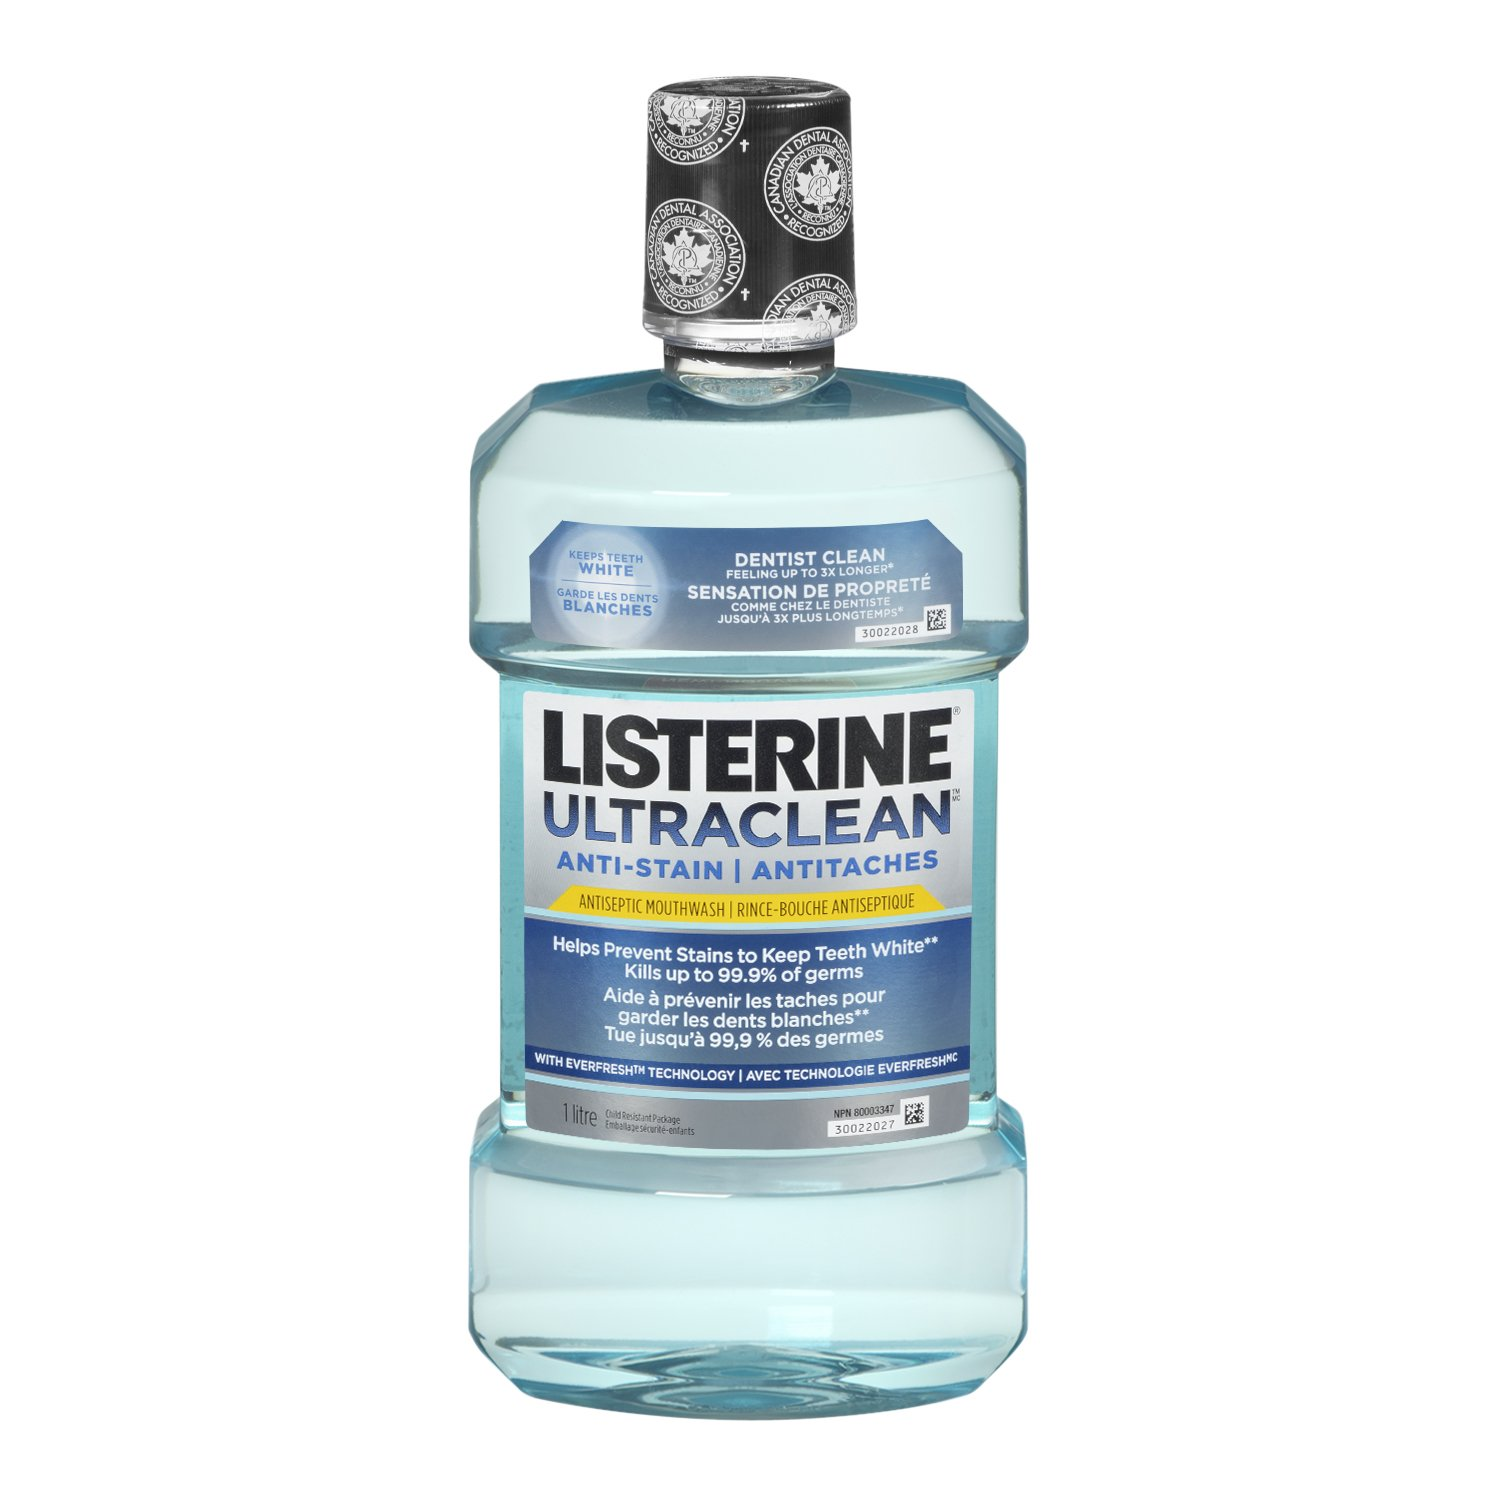 Listerine Ultraclean Anti-Stain Arctic Mint Antiseptic Mouthwash with Everfresh Technology, 250 mL